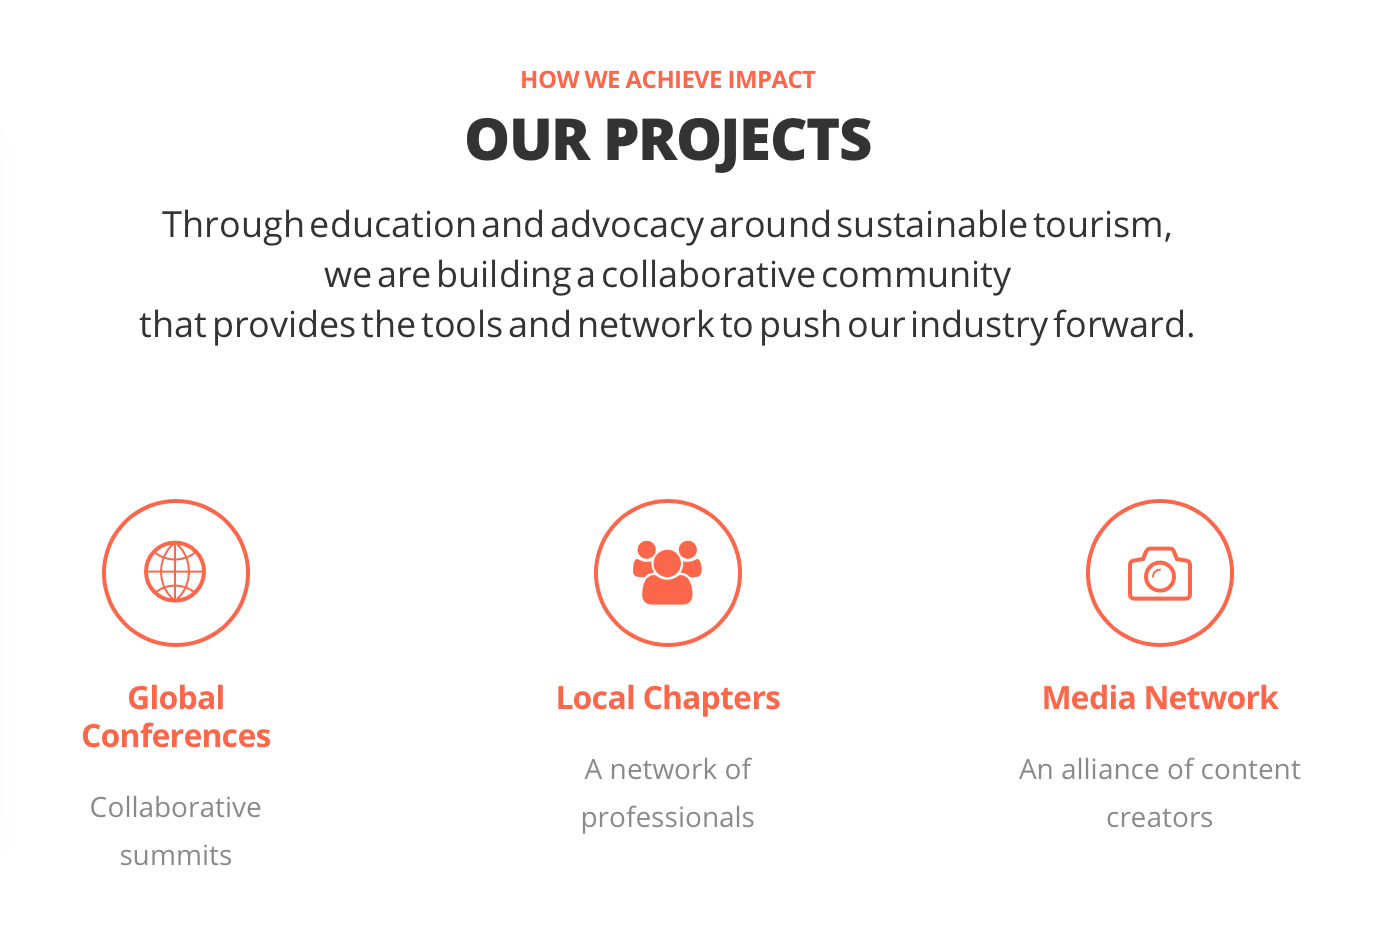 Impact Travel Alliance is striving to improve the tourism industry through education and advocacy.